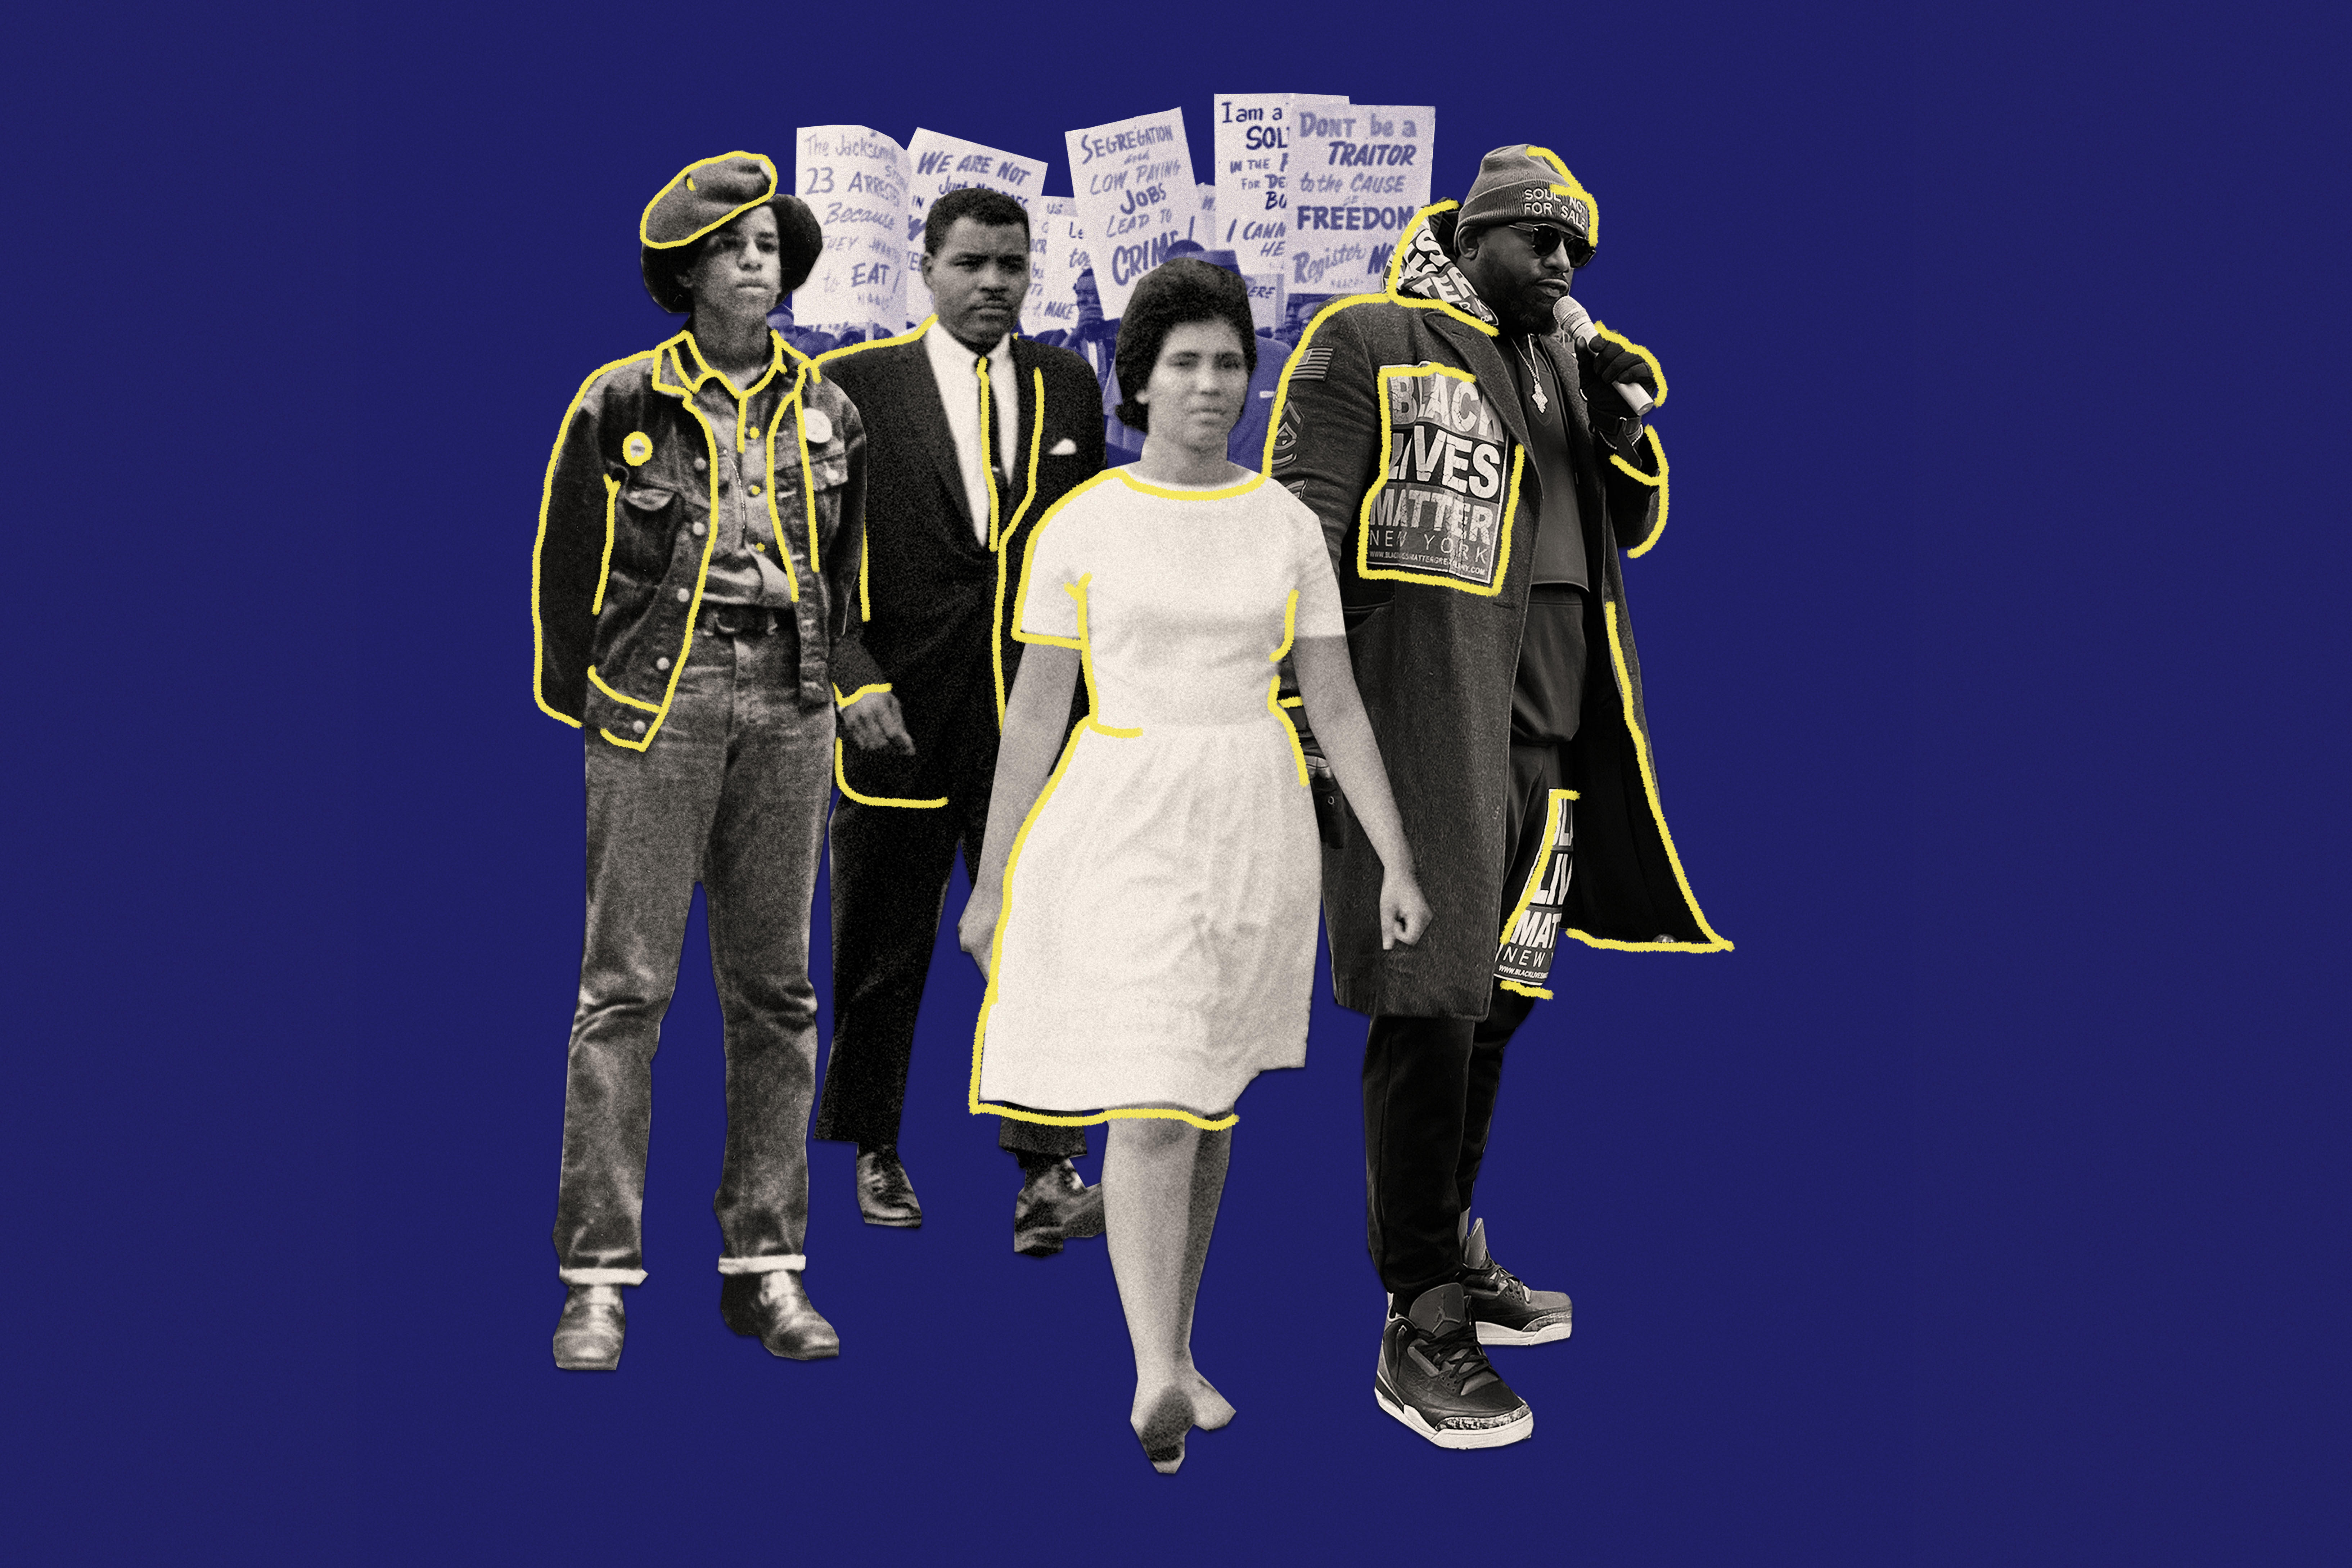 From the suits of the Civil Rights movement of the '50s and '60s, to the power uniform of the Black Panther era in the '70s and the statement Ts that have outfitted today's Black Lives Matter protests, these moments have marked the intersection of fashion, politics and justice.